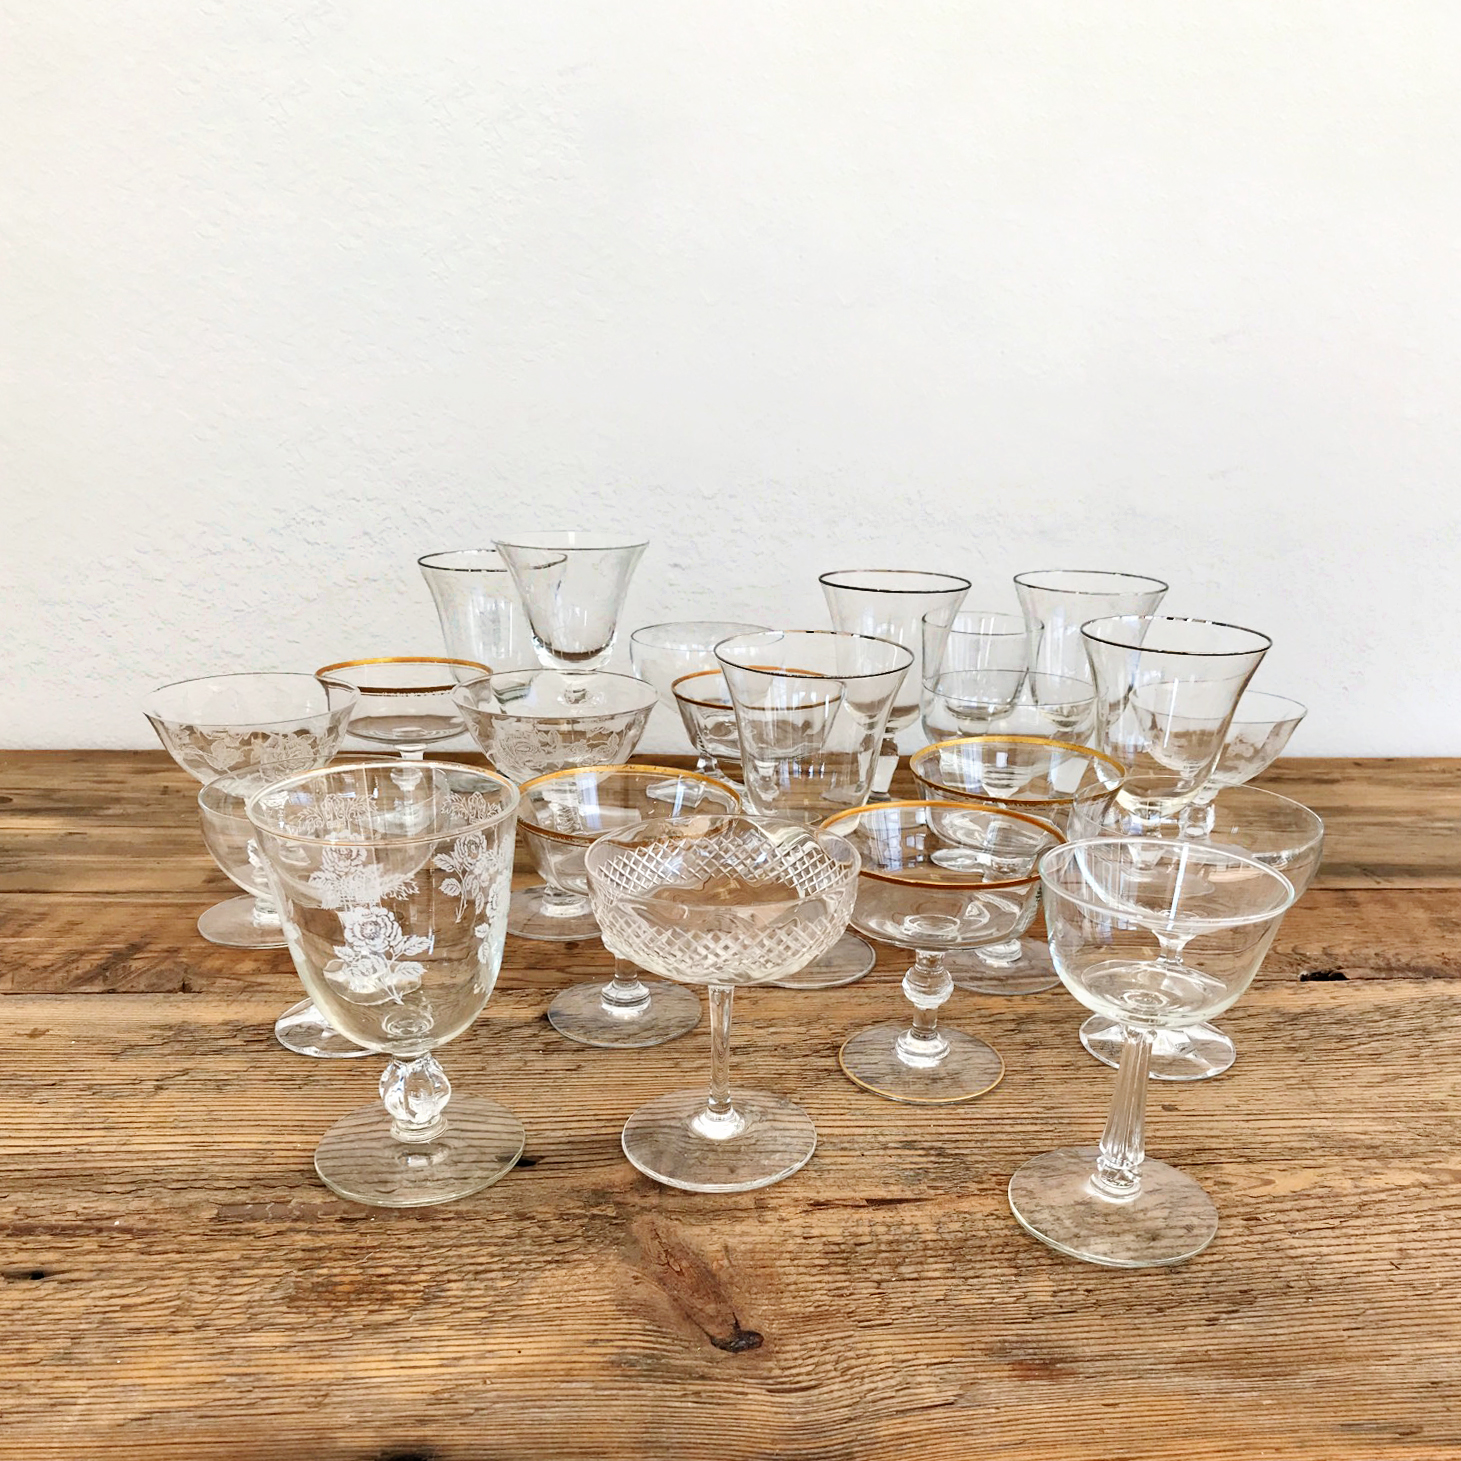 renee landry events glassware ecclectic cut glass gold rimmed boho wedding rentals.jpg